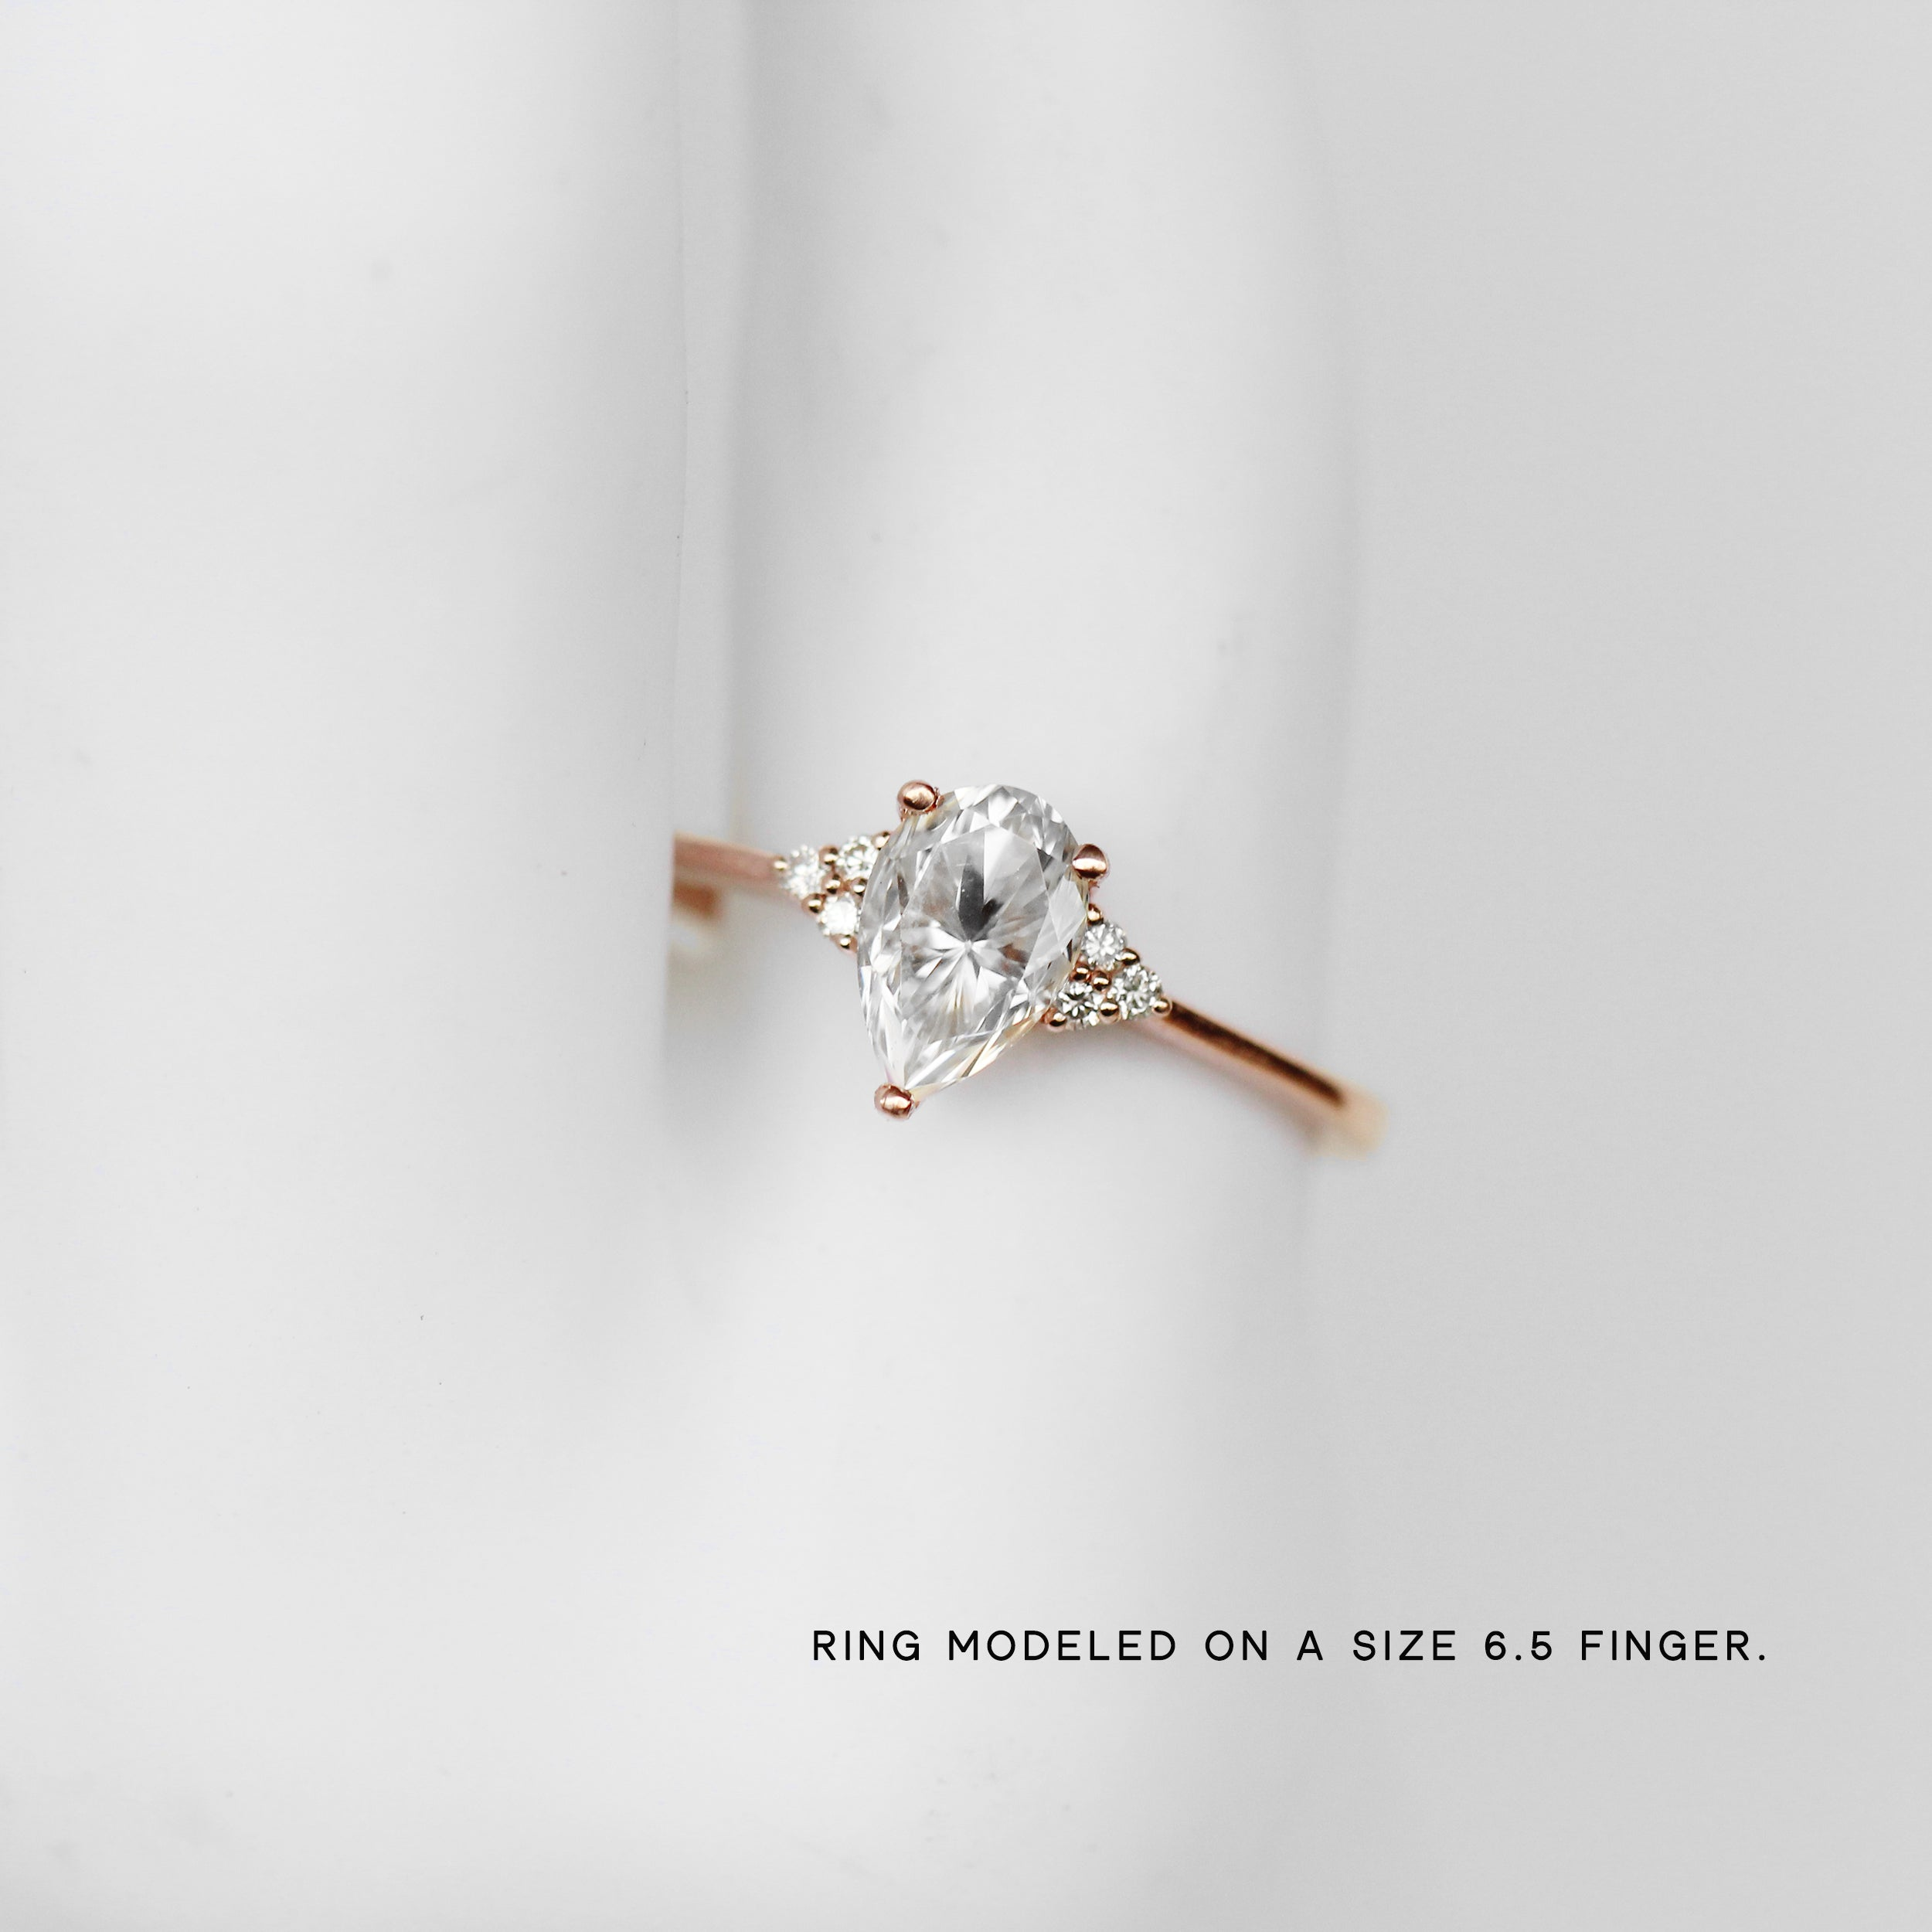 Imogene Ring with a Pear Moissanite and diamonds in your choice of gold - Salt & Pepper Celestial Diamond Engagement Rings and Wedding Bands  by Midwinter Co.